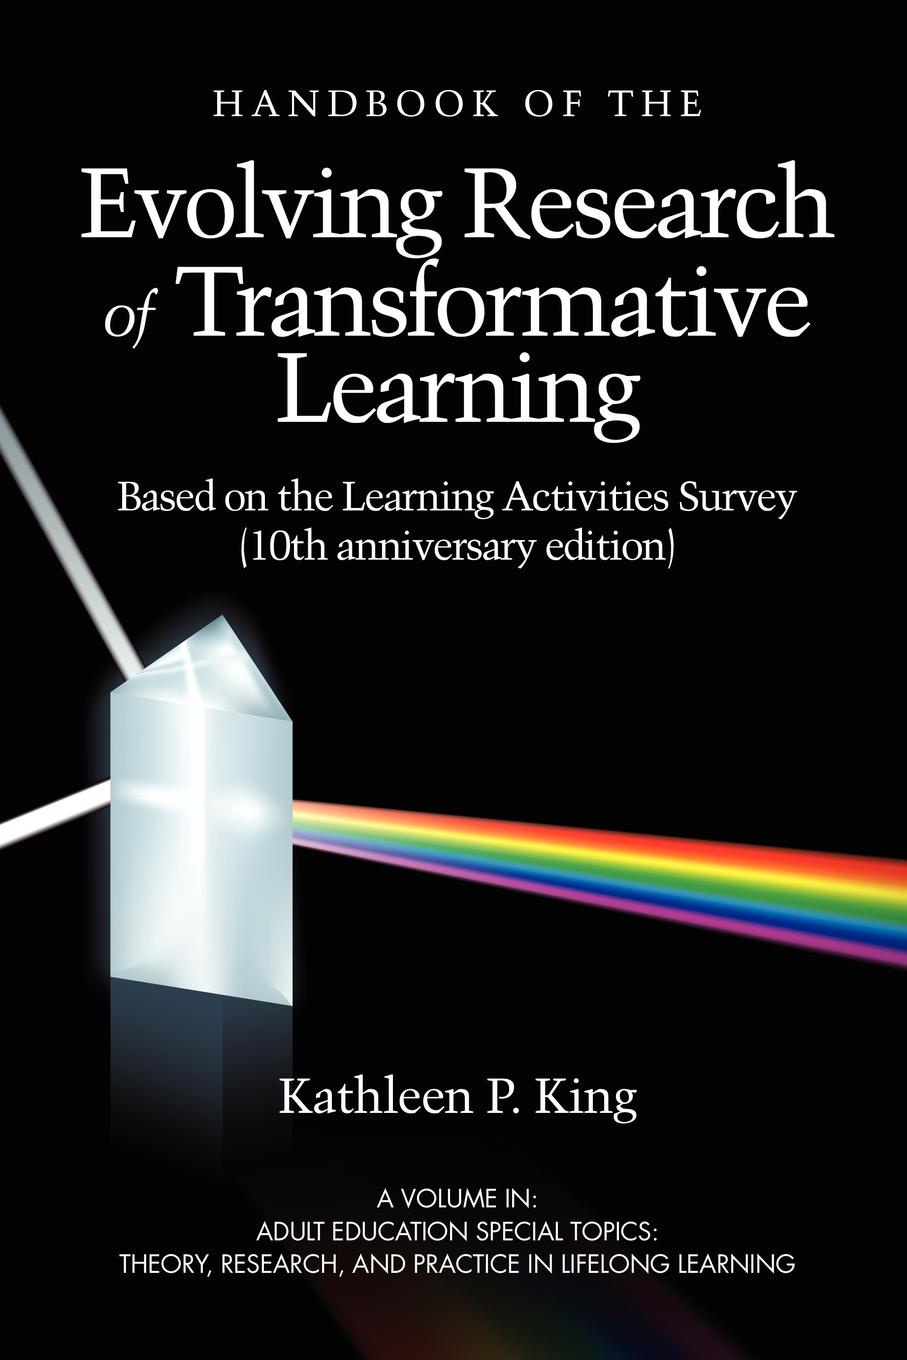 Kathleen P. King The Handbook of the Evolving Research of Transformative Learning Based on the Learning Activities Survey (10th Anniversary Edition) (PB) taylor edward w the handbook of transformative learning theory research and practice